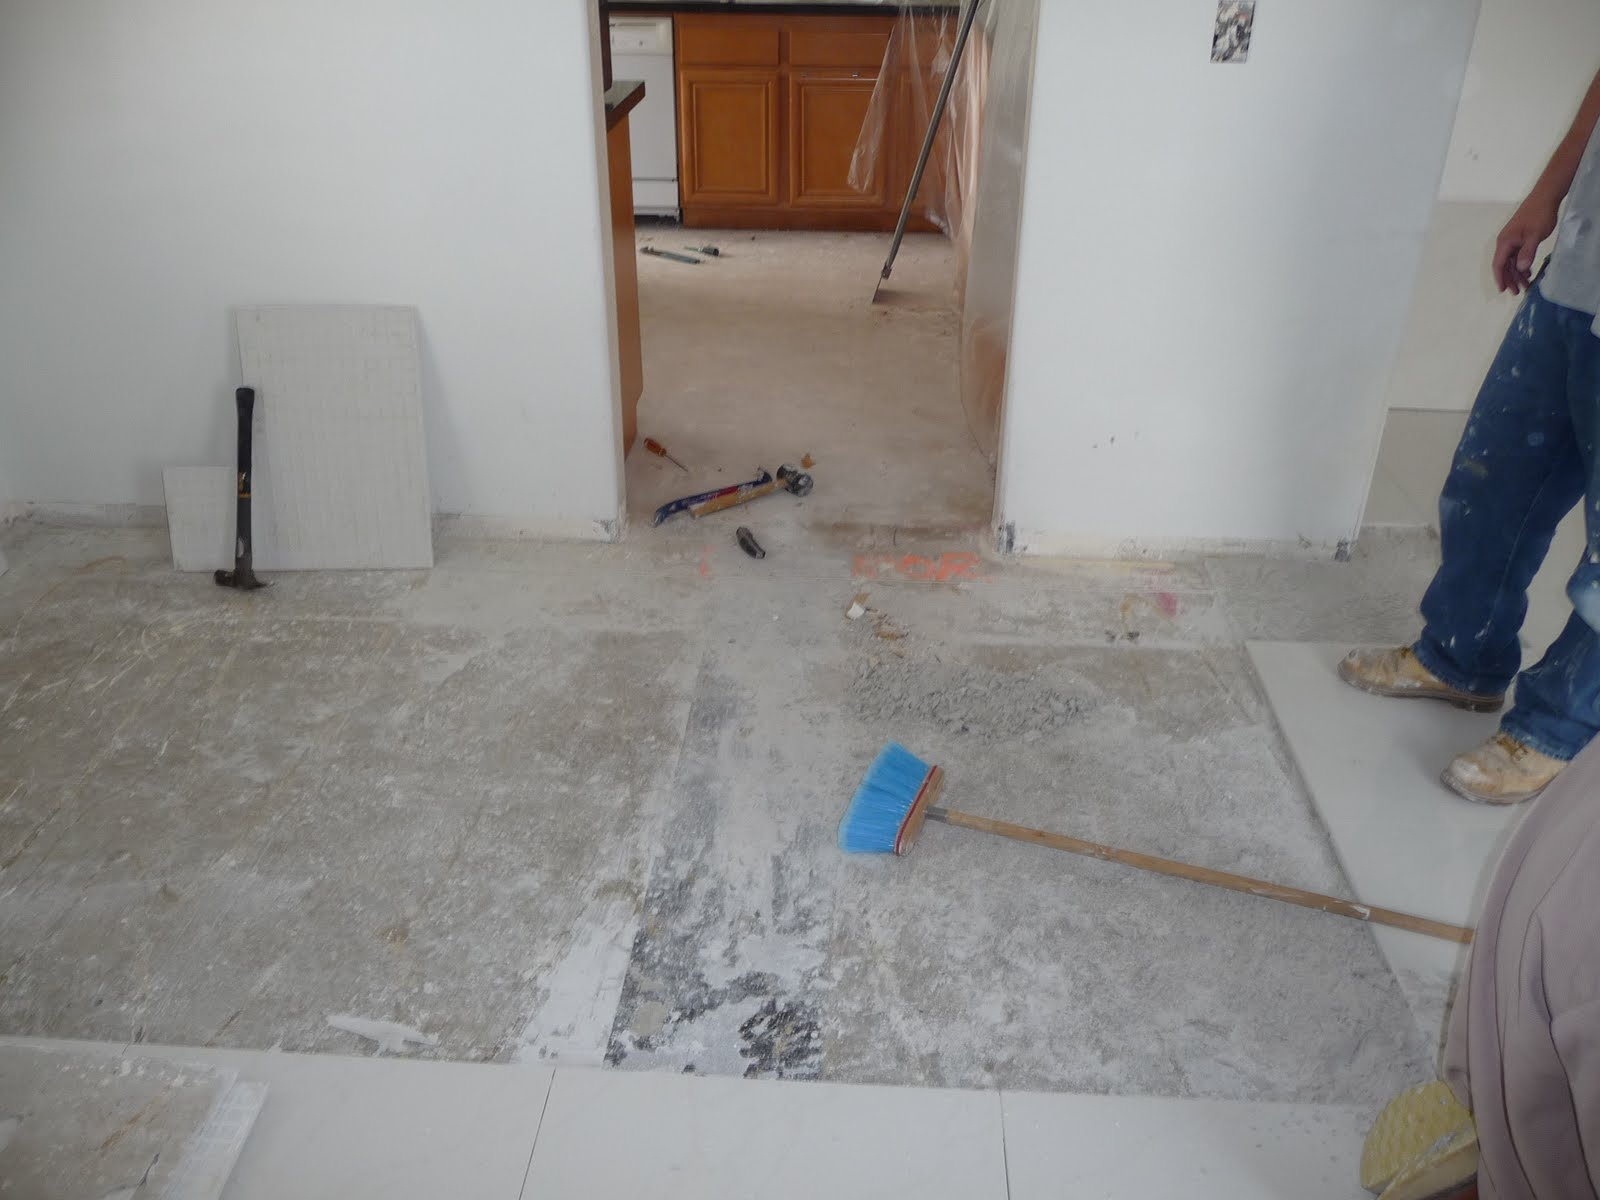 Thb construction updating old floor tile with 2ft x 2ft granite tiles updating old floor tile with 2ft x 2ft granite tiles removal dailygadgetfo Gallery